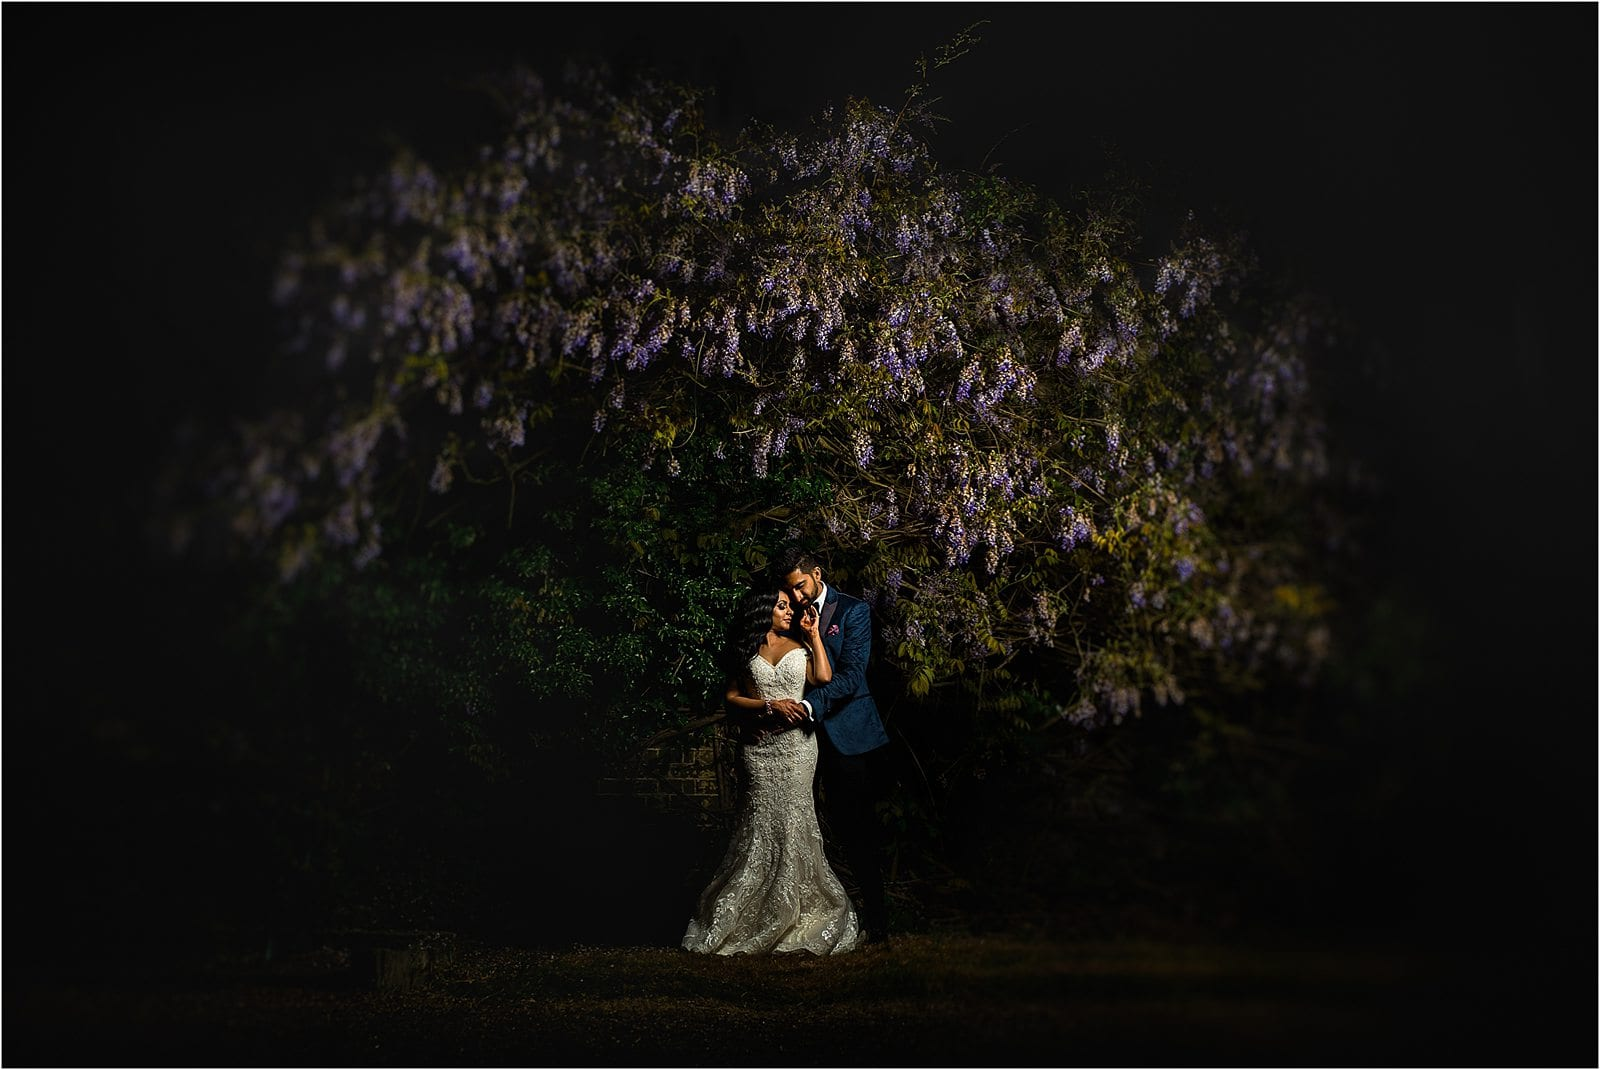 best wedding photography in warwickshire - bride and groom under a tree at nighttime